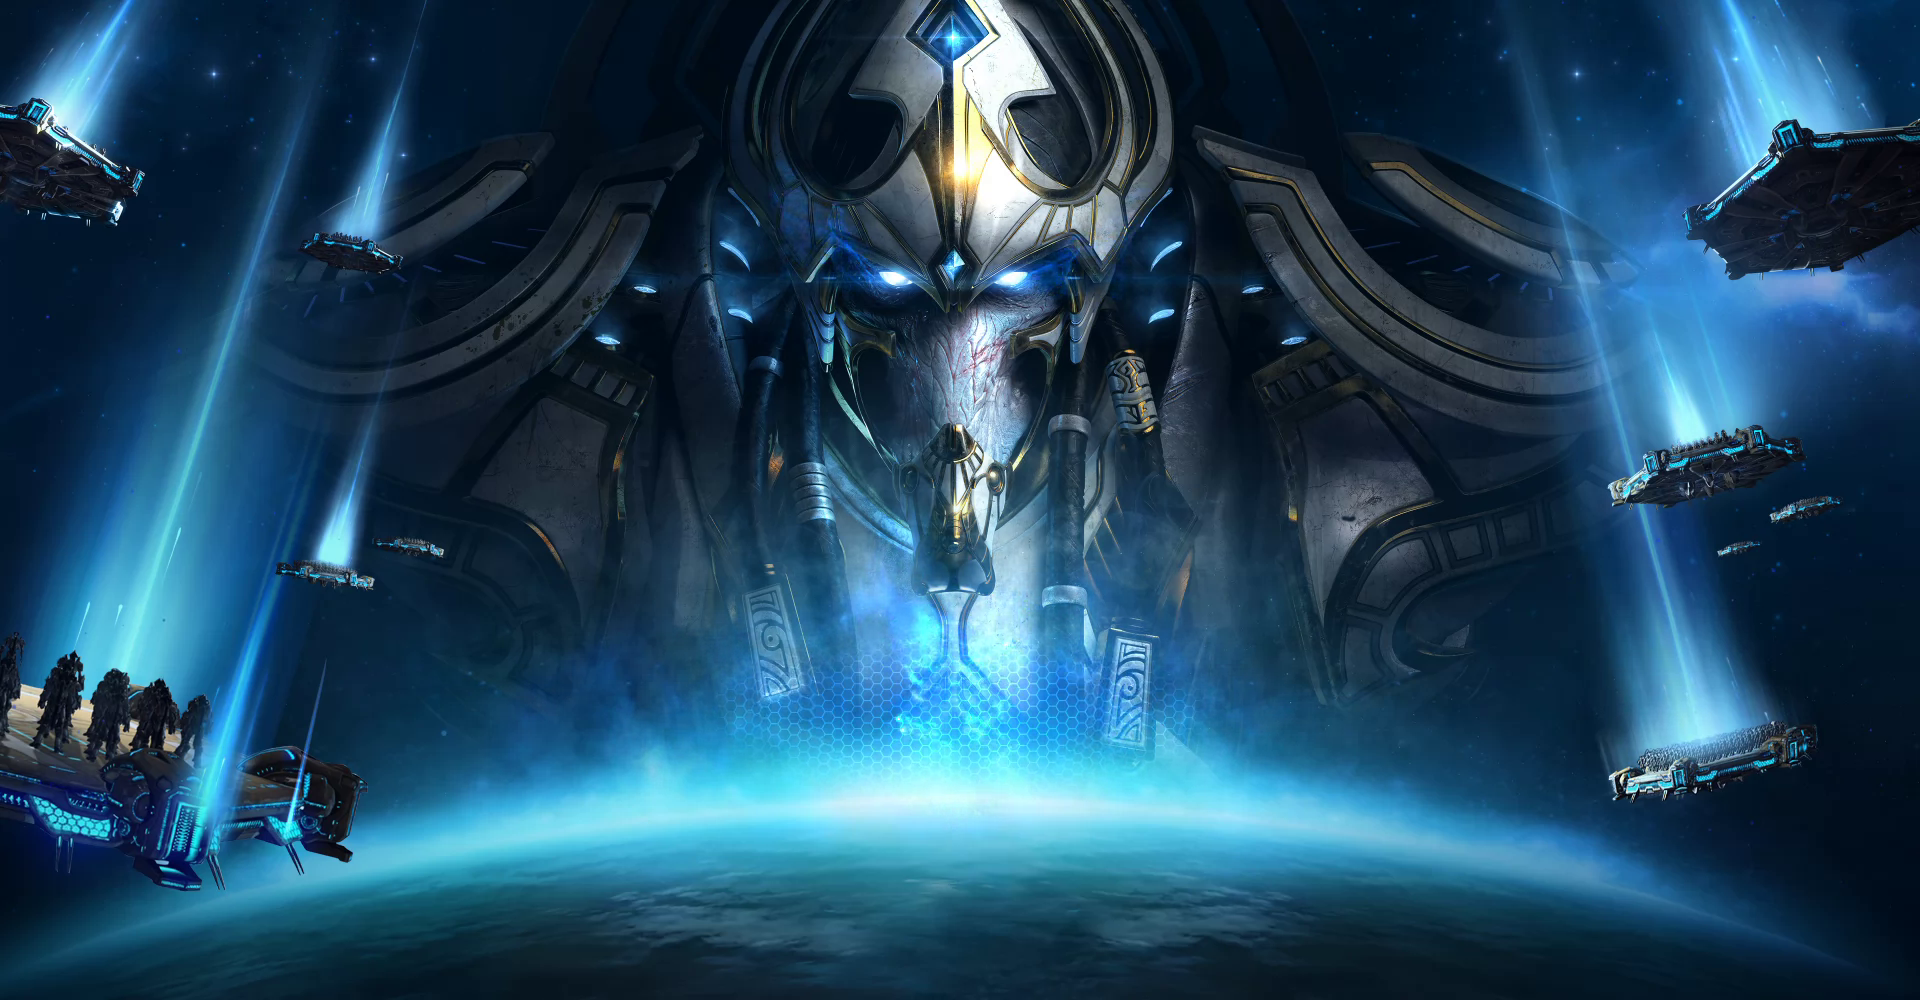 DeepMind's path of destruction takes down two StarCraft II